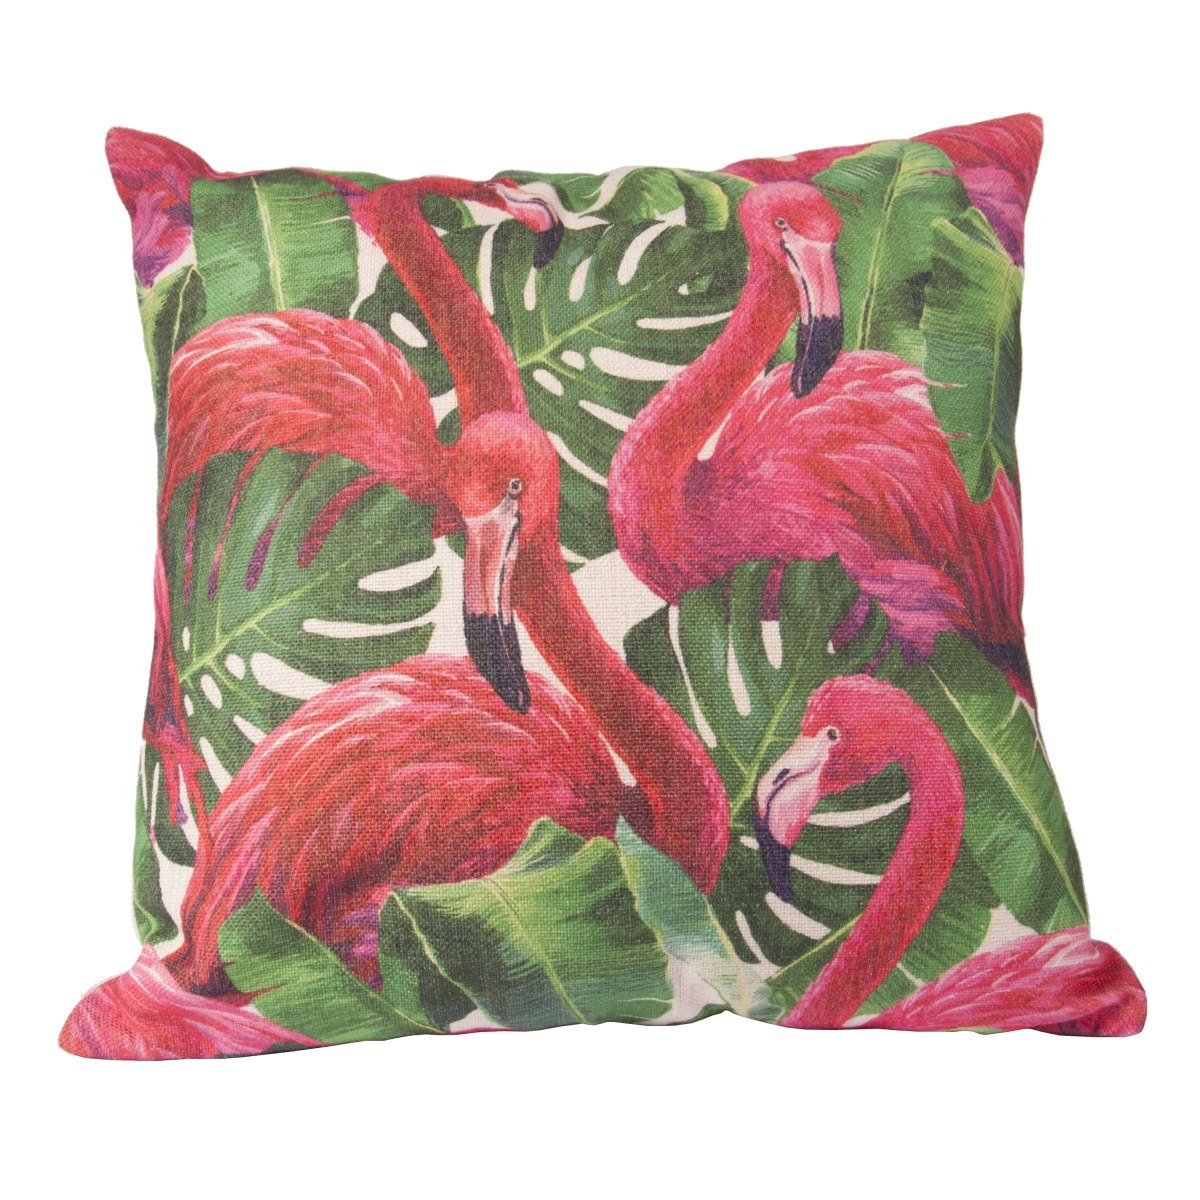 Flamingo Jungle Cushion Cover-fliphome.com.au